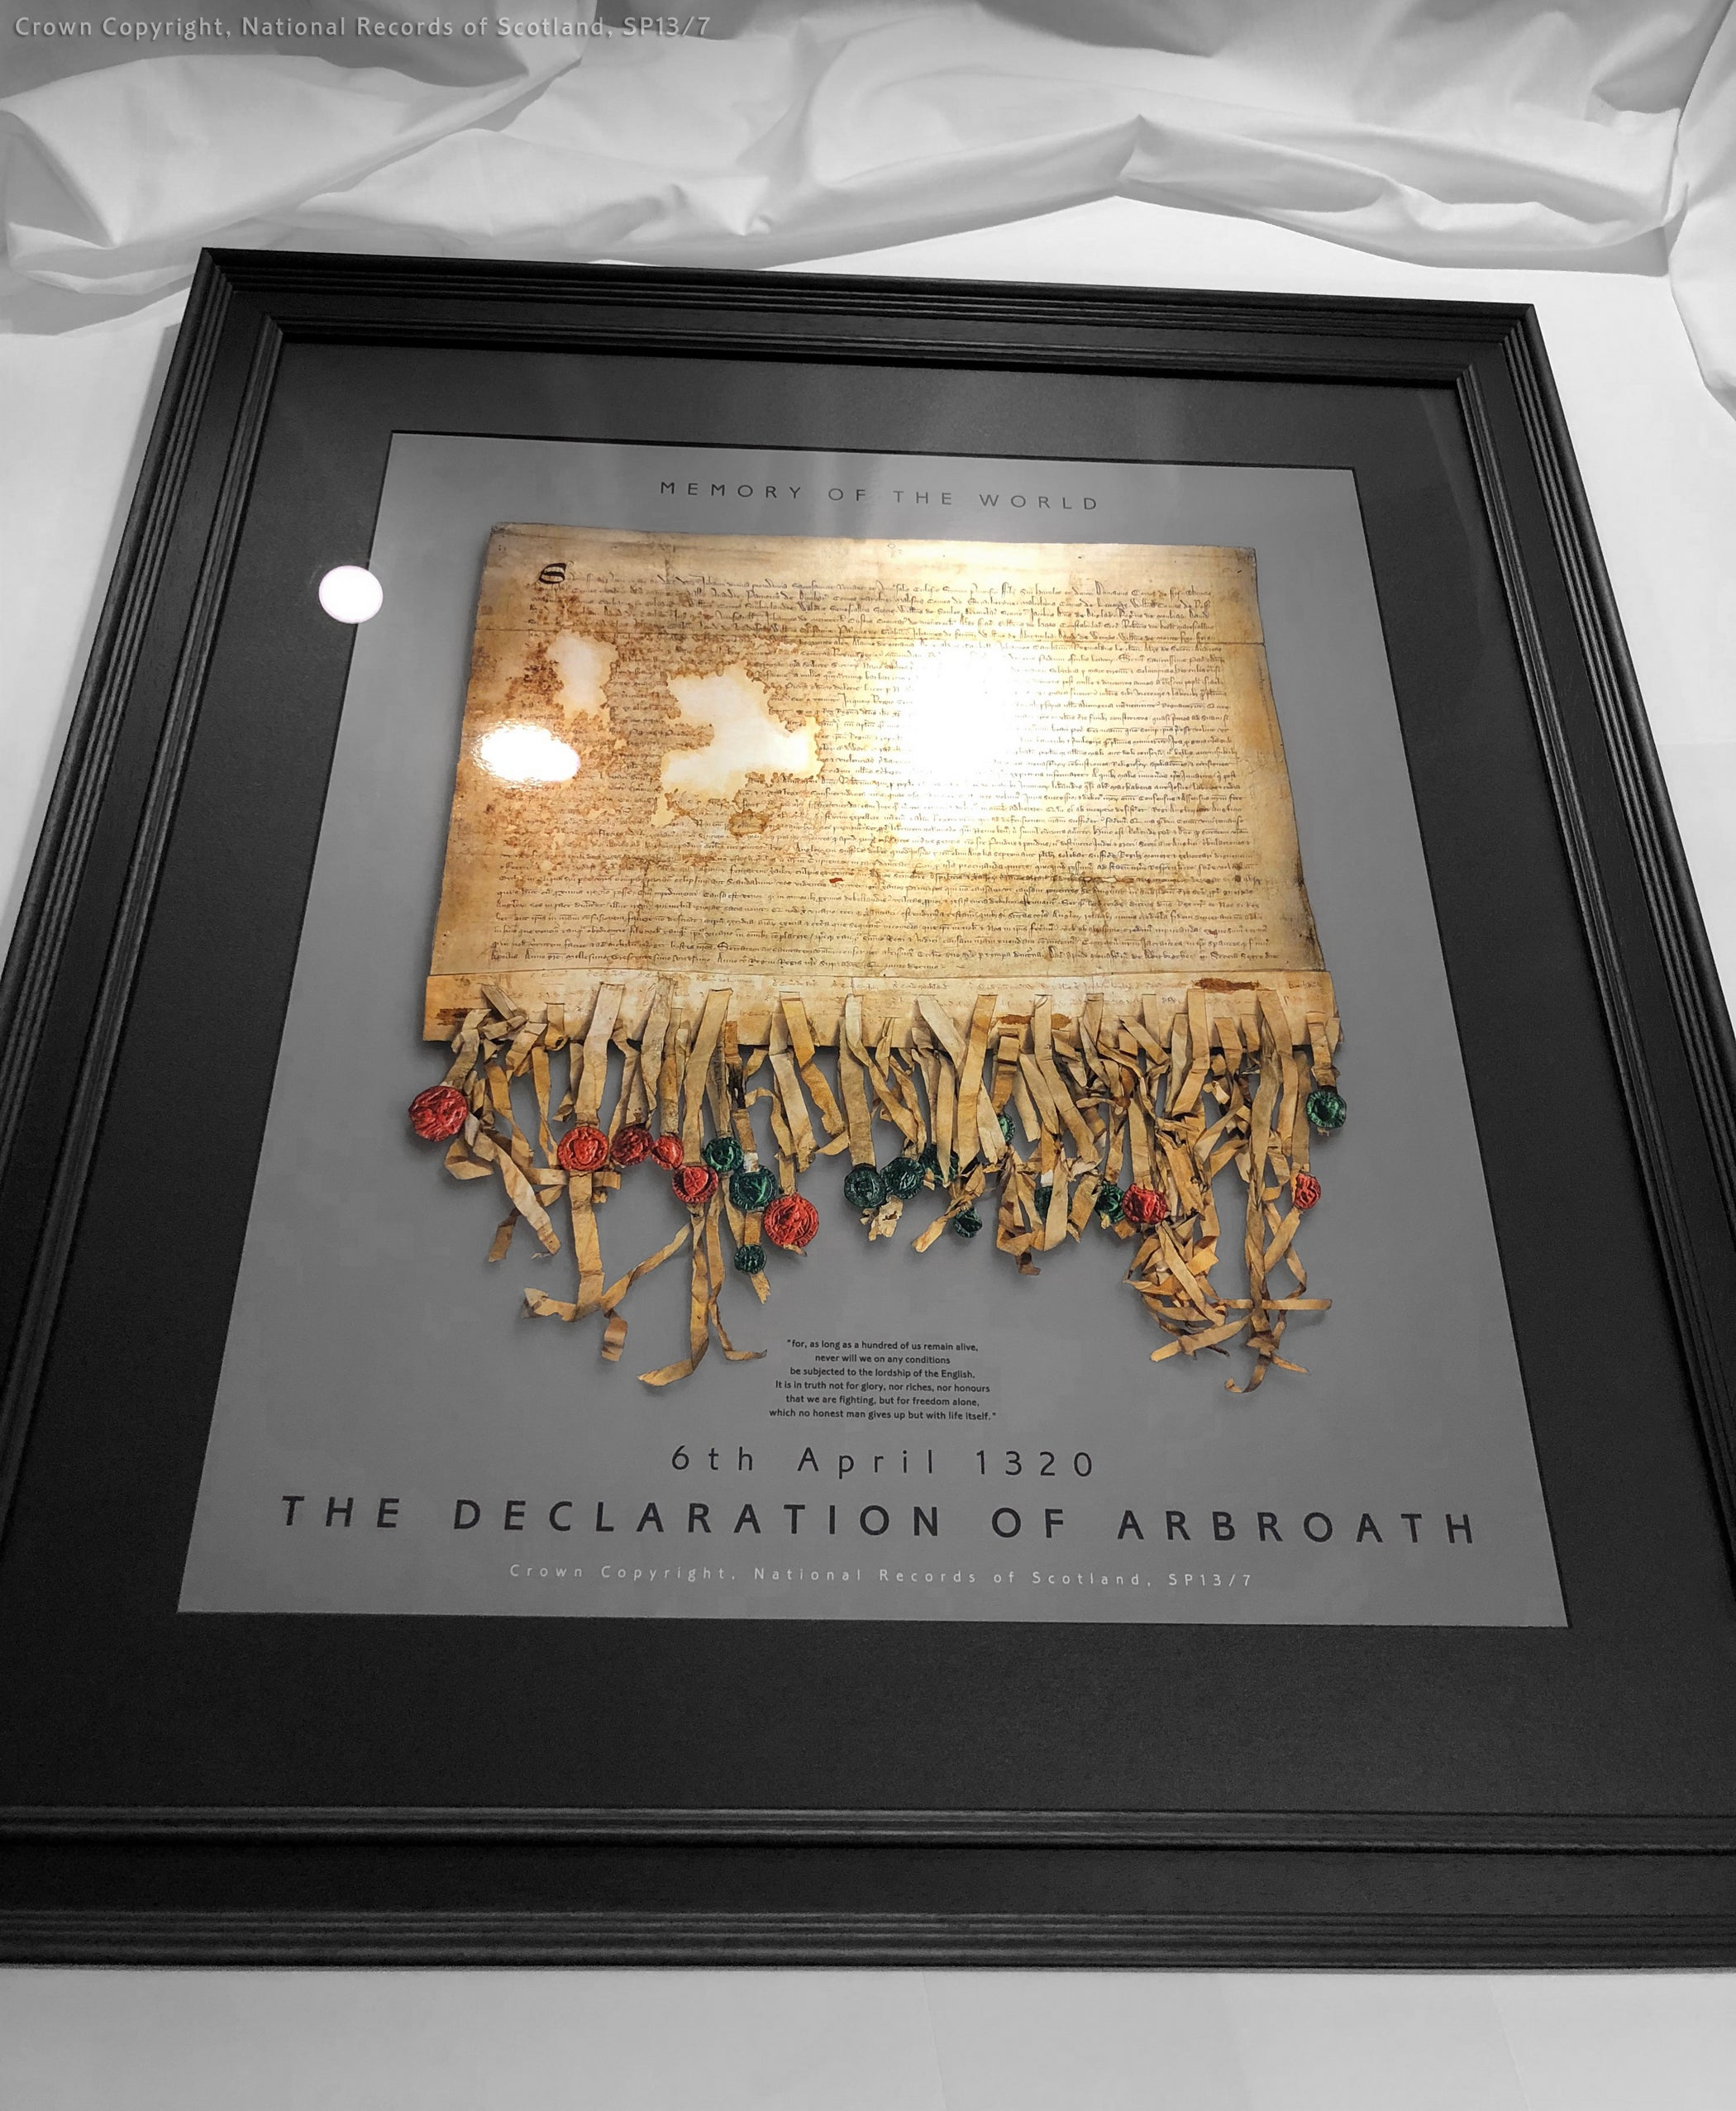 Fine Art Declaration of Arbroath framed metallic Pewter laser printed editions